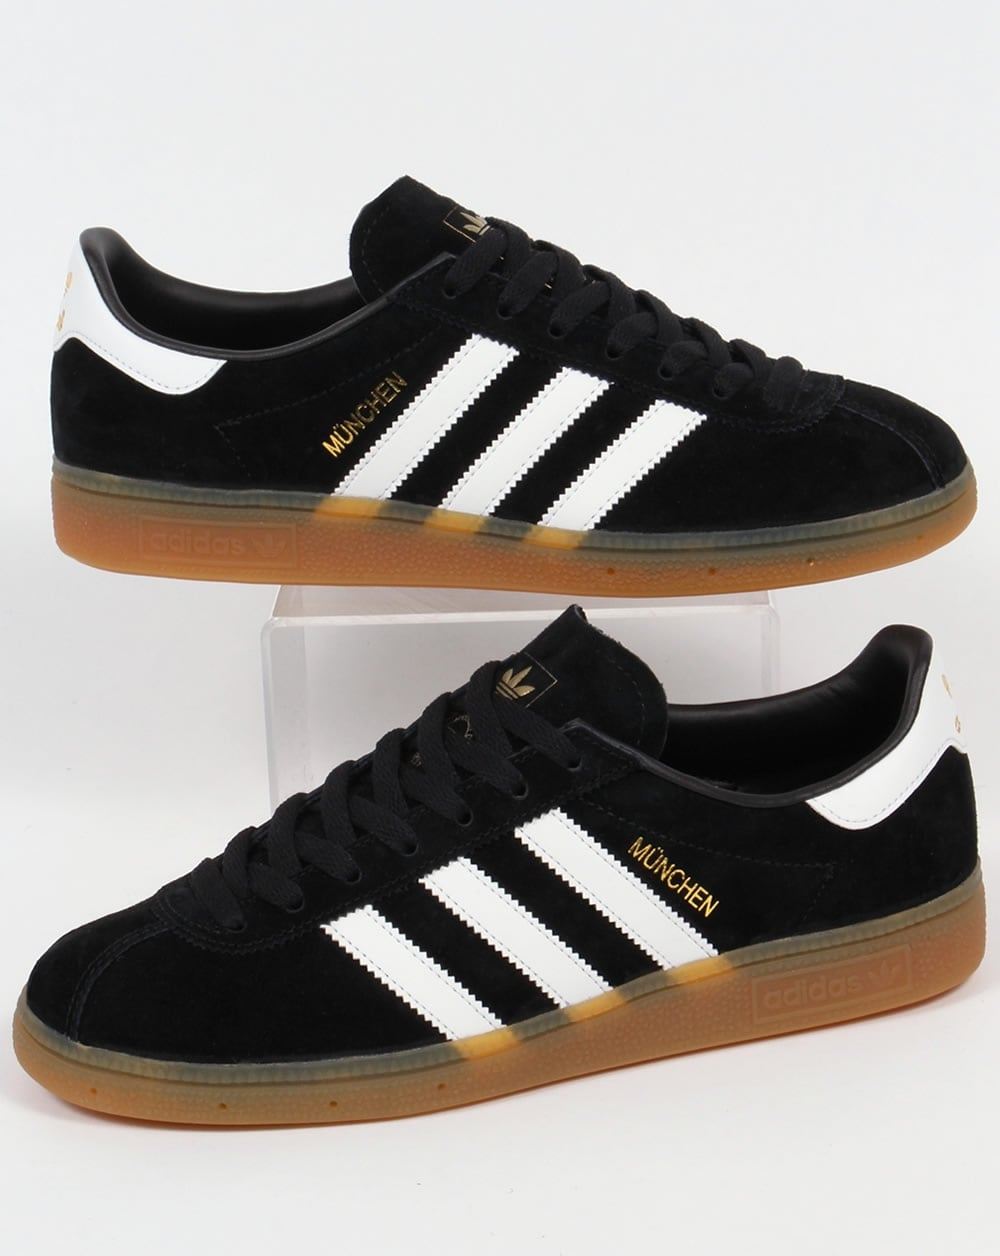 big sale 80329 61ecf adidas Trainers Adidas Munchen Trainers Black White